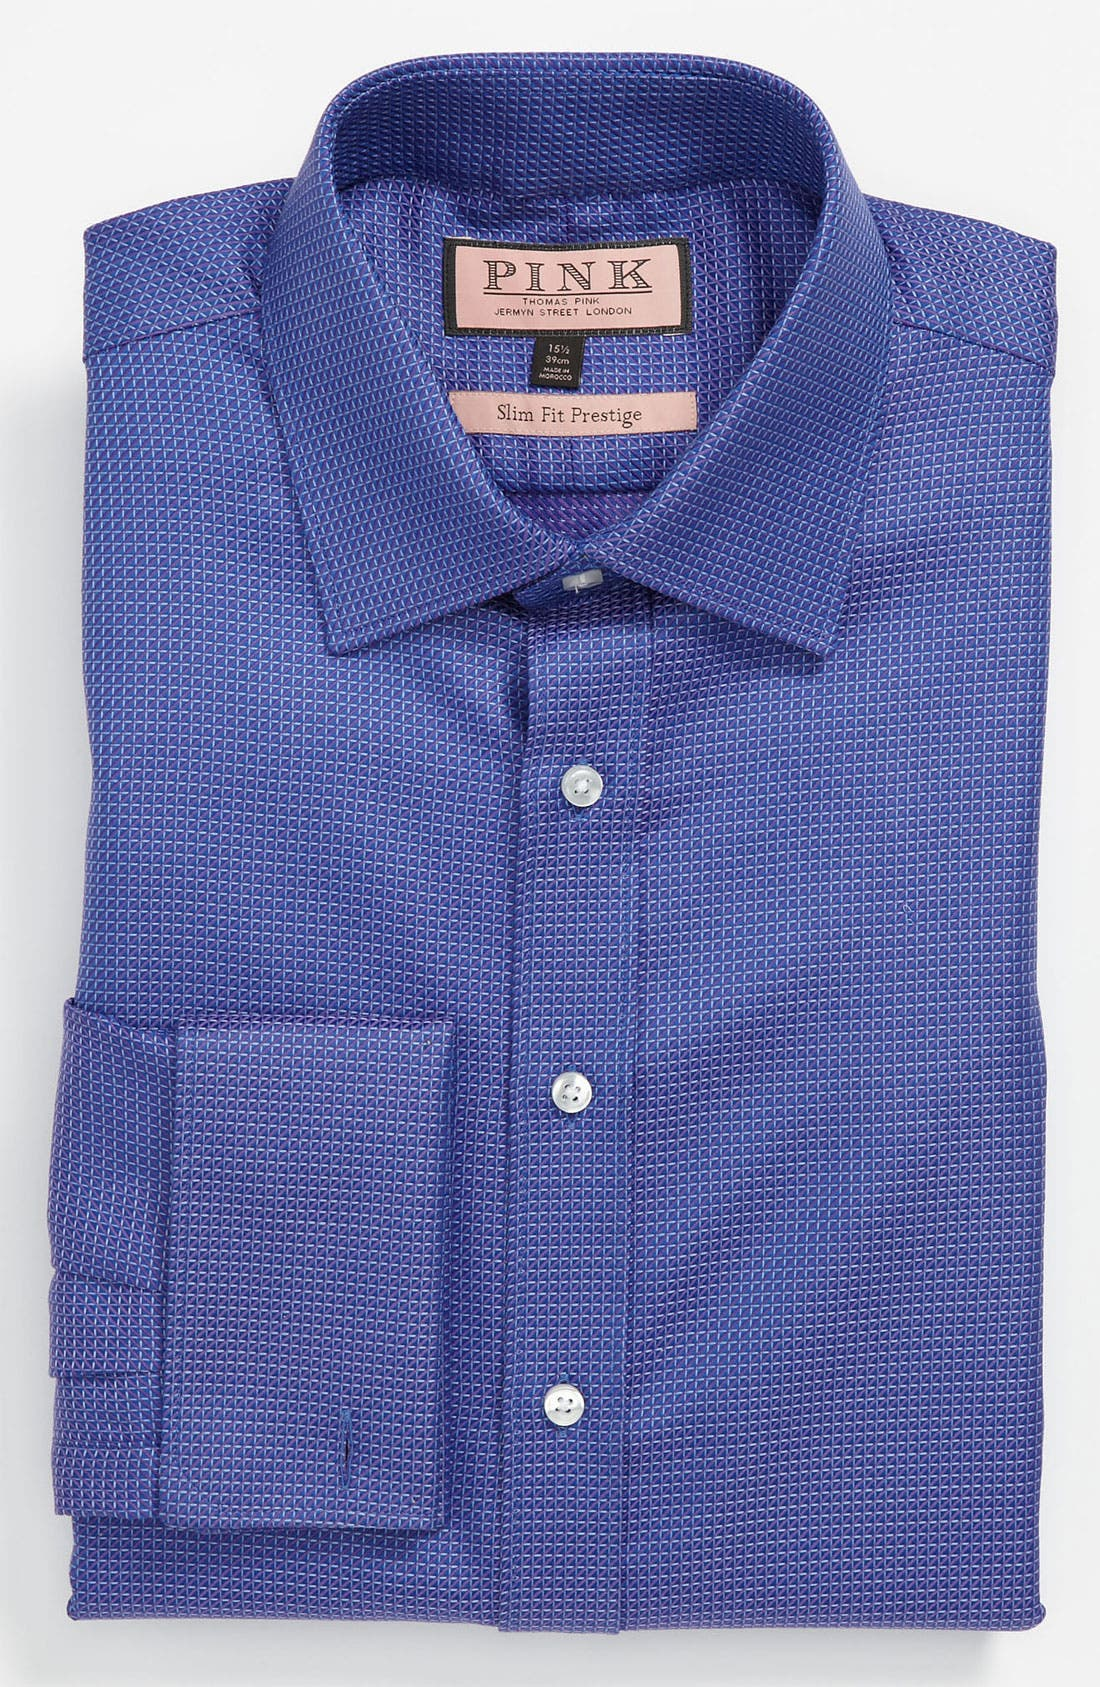 Alternate Image 1 Selected - Thomas Pink Slim Fit Prestige Dress Shirt